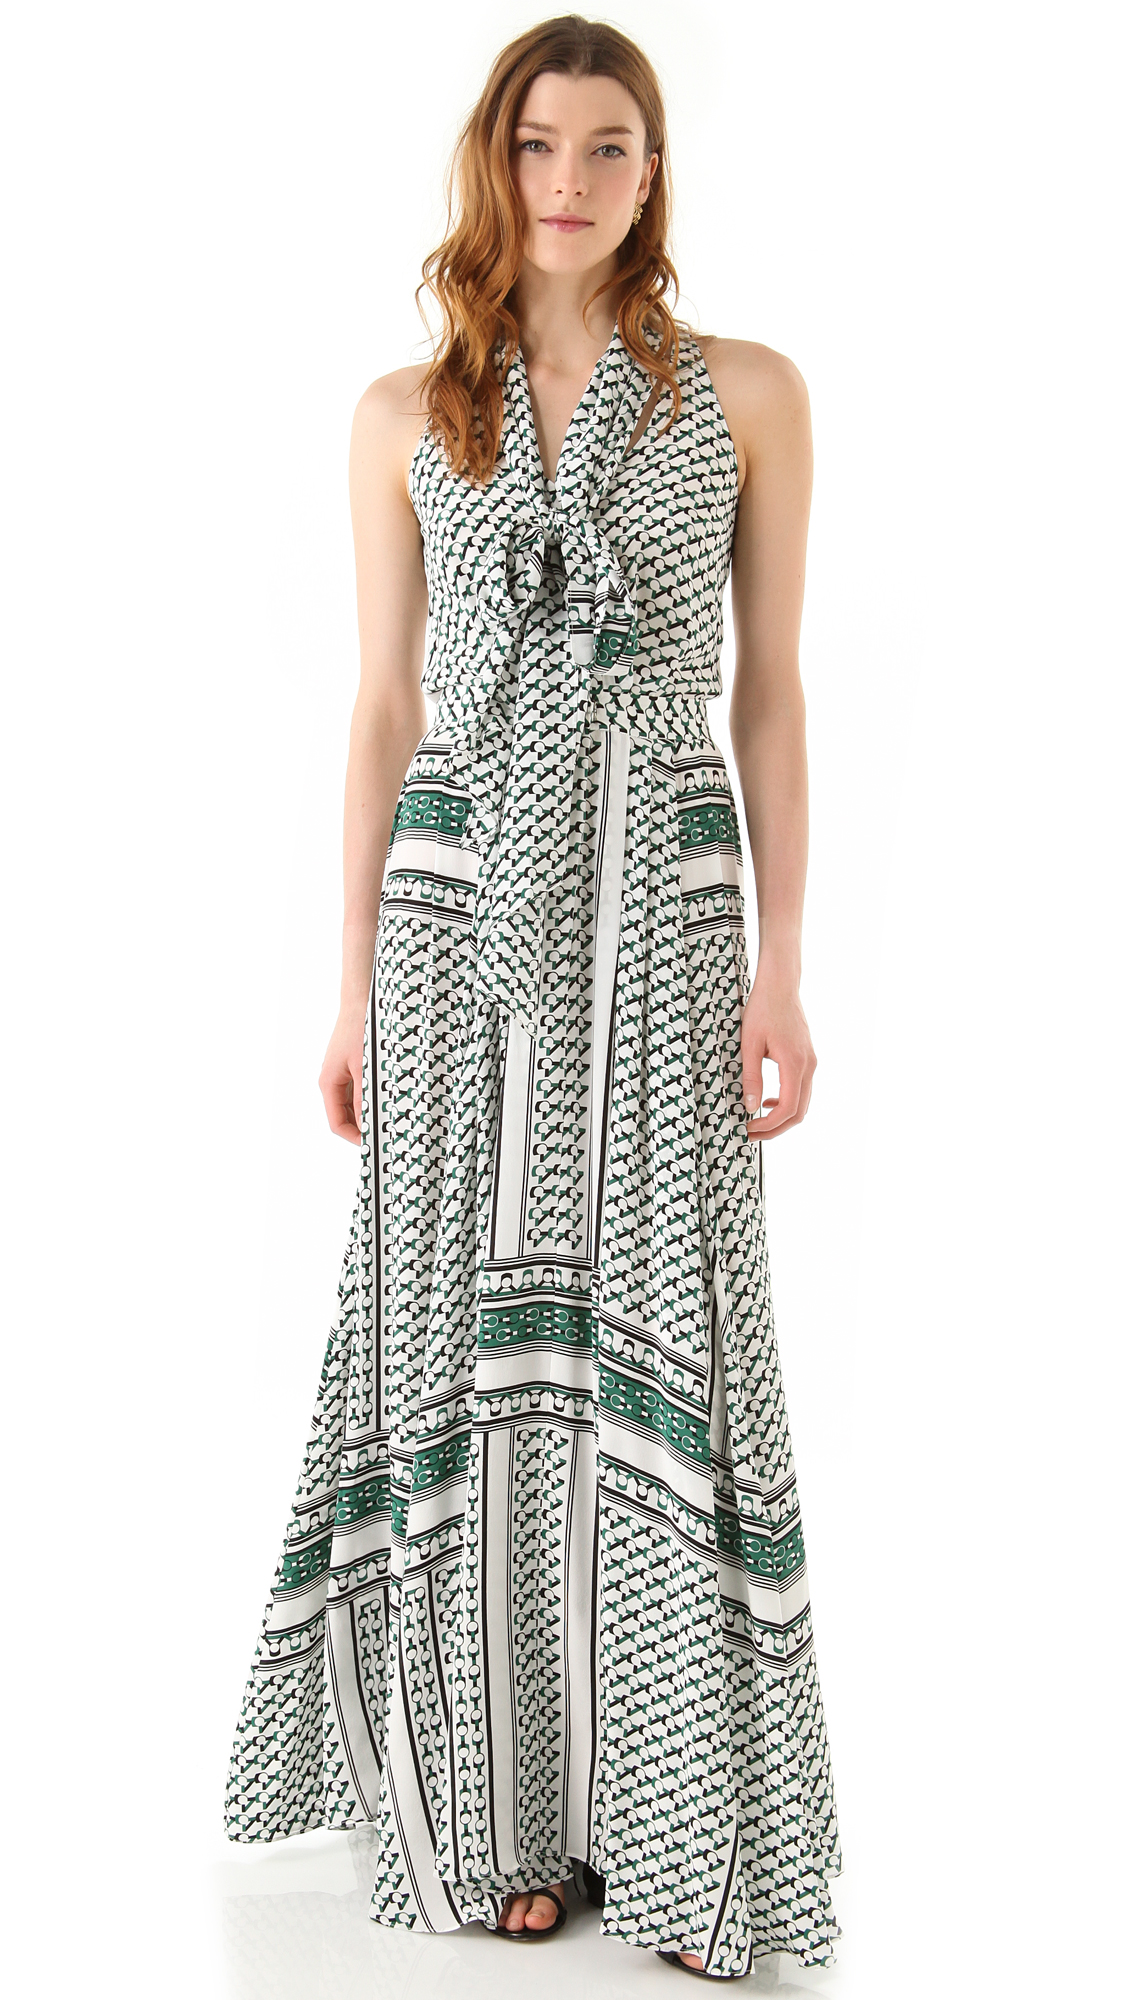 Derek lam maxi dress